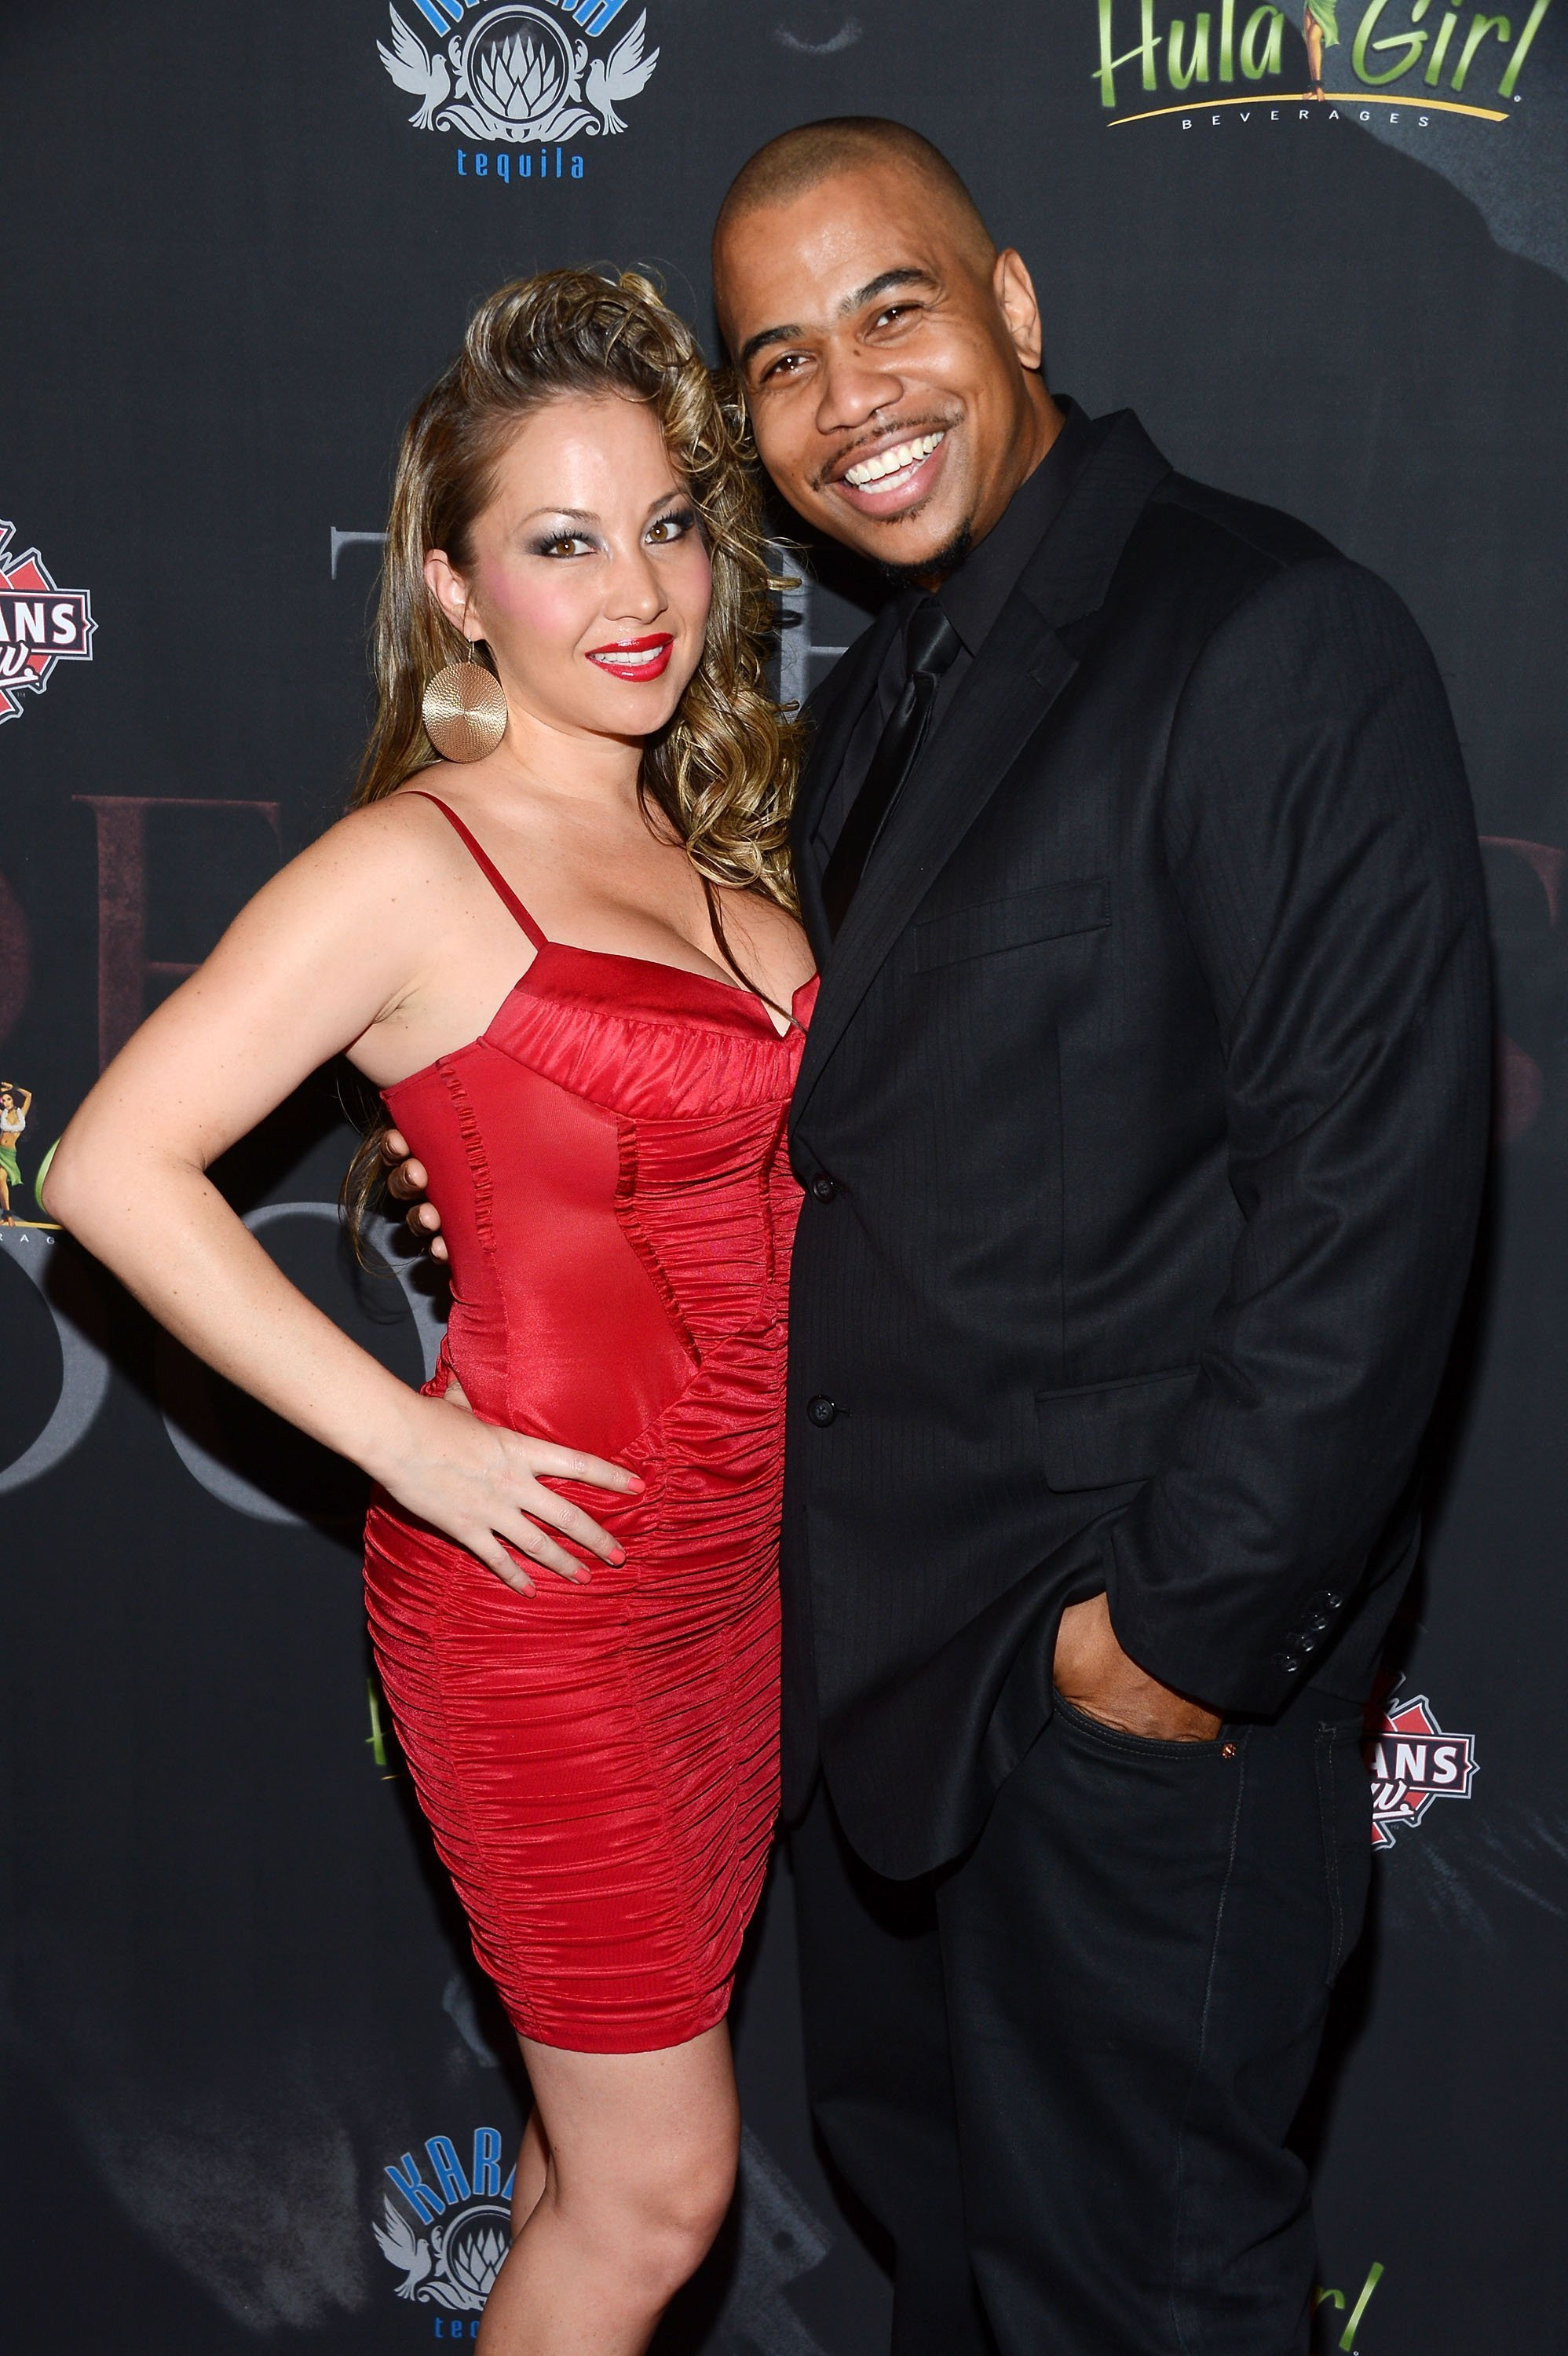 "Omar Gooding & Mia Vogel at the Premiere of ""The Devil's Dozen"" on Feb. 1, 2013 in Hollywood, California 